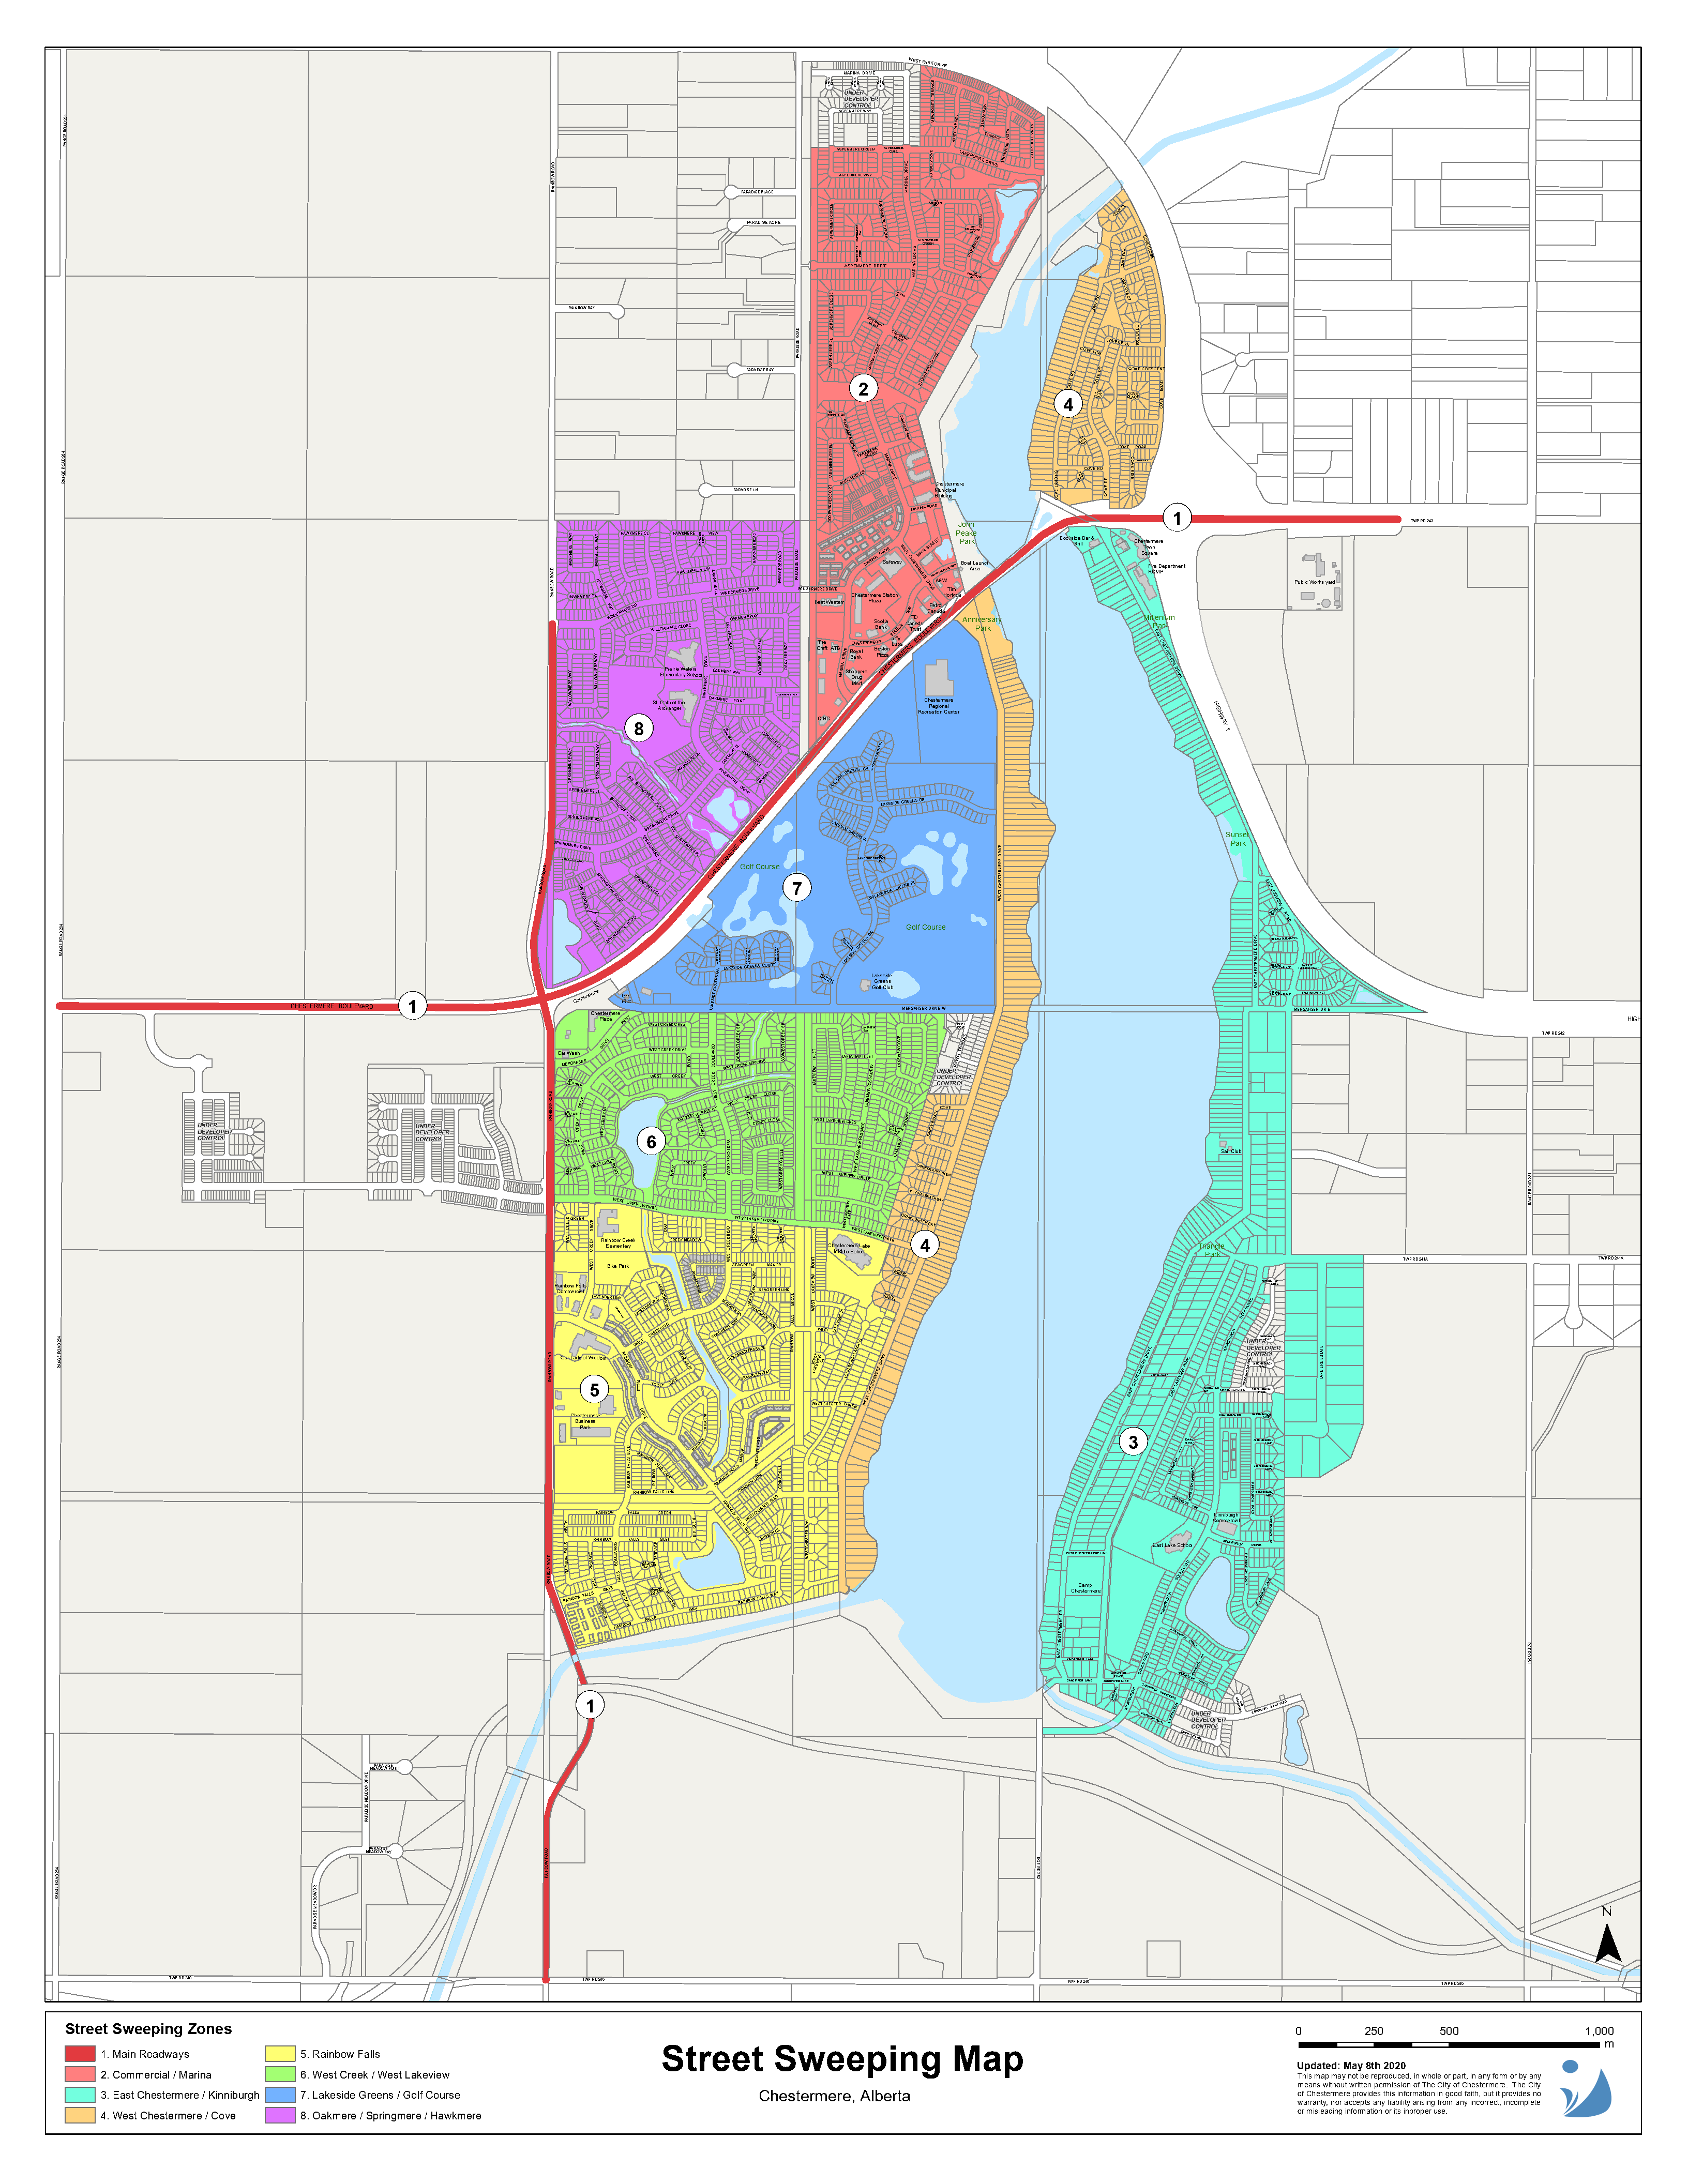 Street Sweeping Map showing the 8 zones in Chestermere. Opens in new window